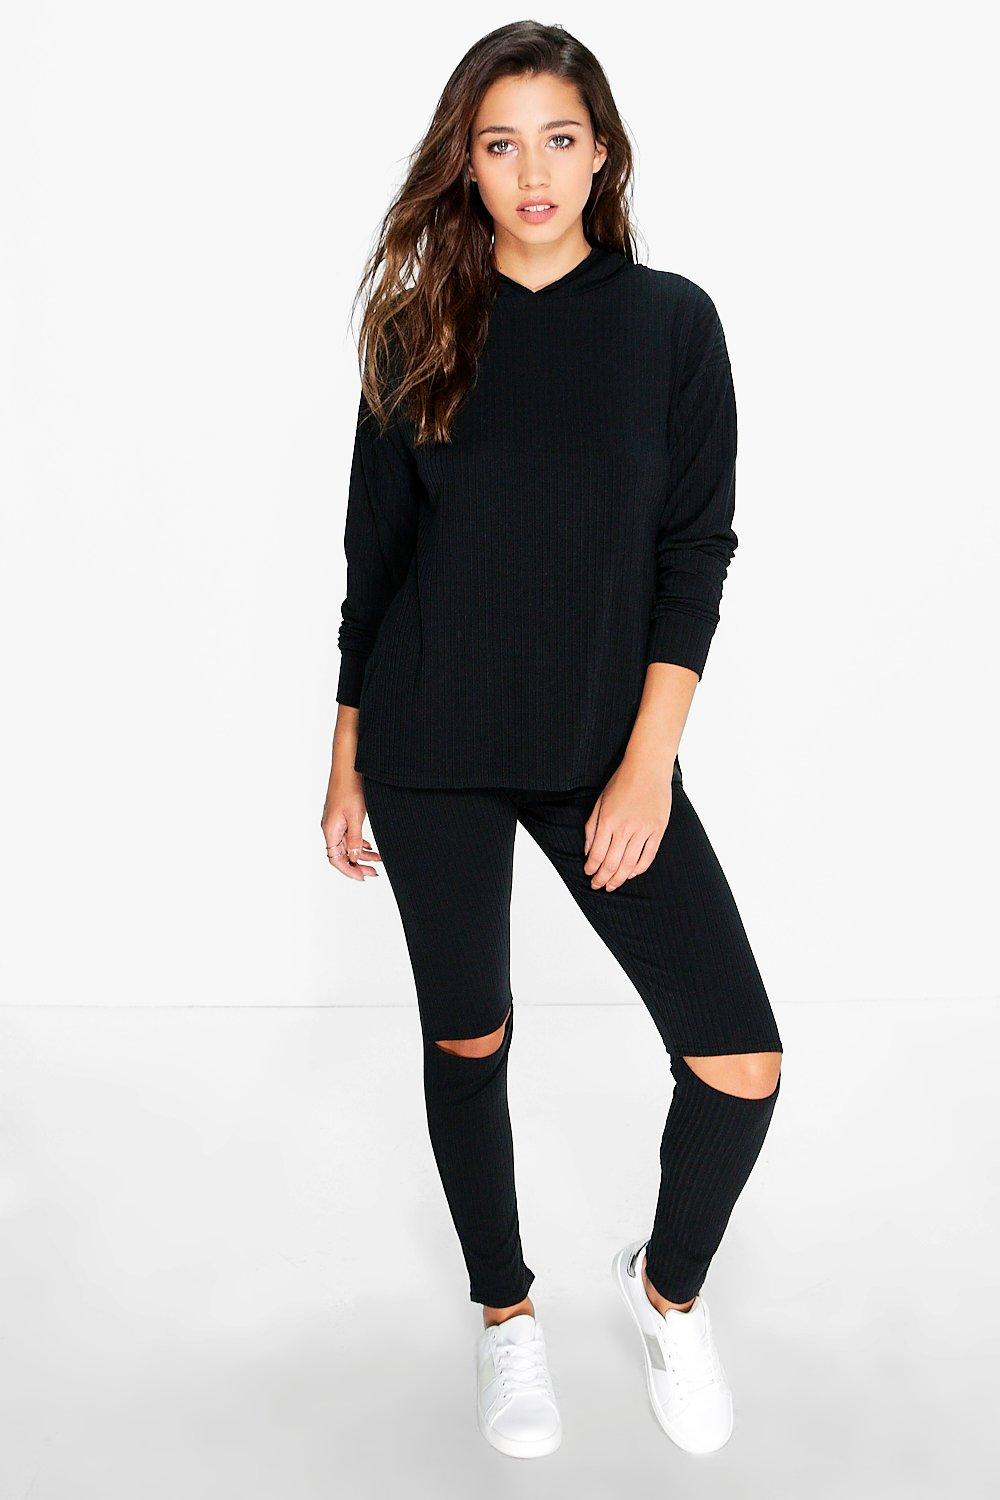 Paige Slit Knee & Hoody Rib Knitted Loungewear Set